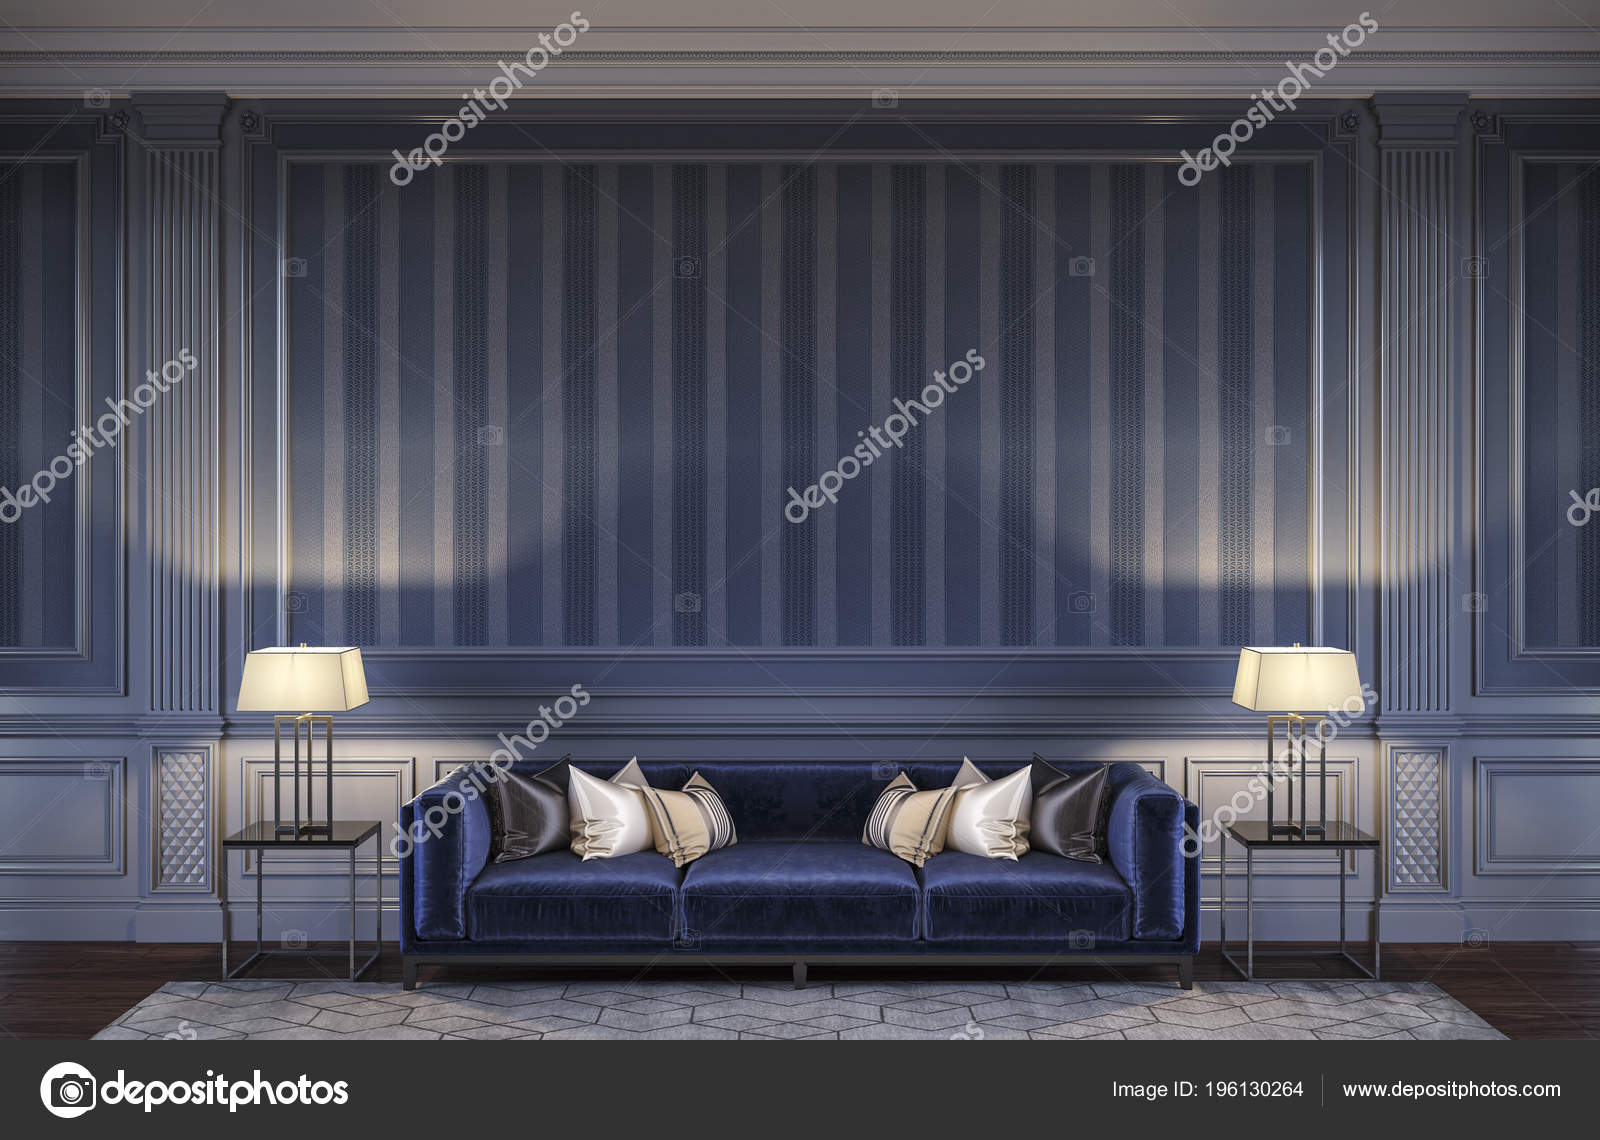 Contemporary Interior In Blue Tones With A Sofa And Striped